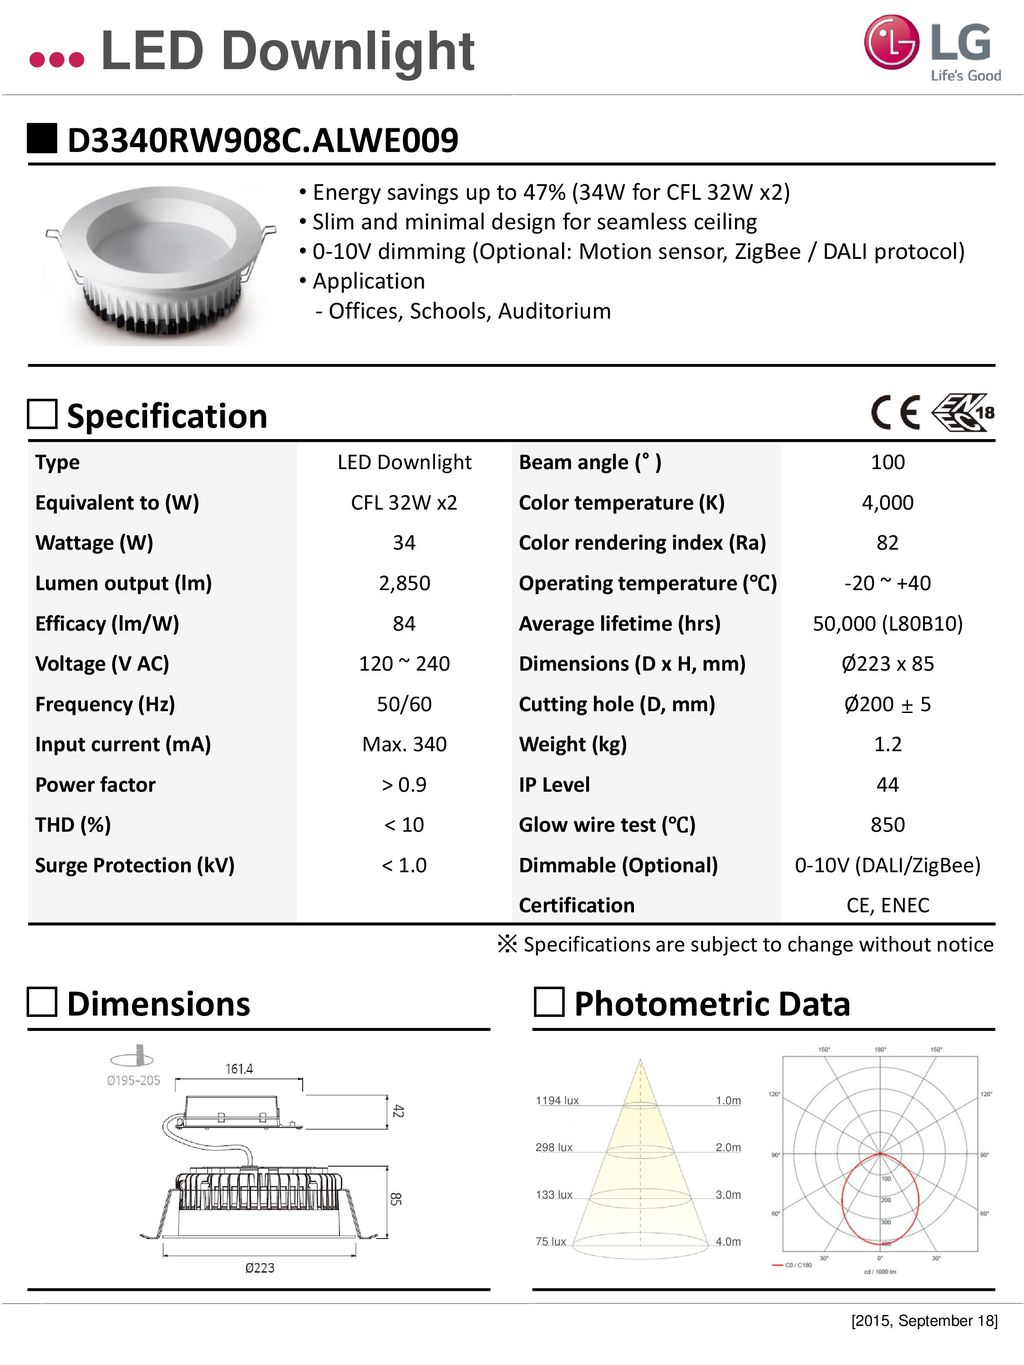 Led Downlight D1330rw906calwe009 Specification Dimensions 0 10v Dimming Wiring Diagram 11